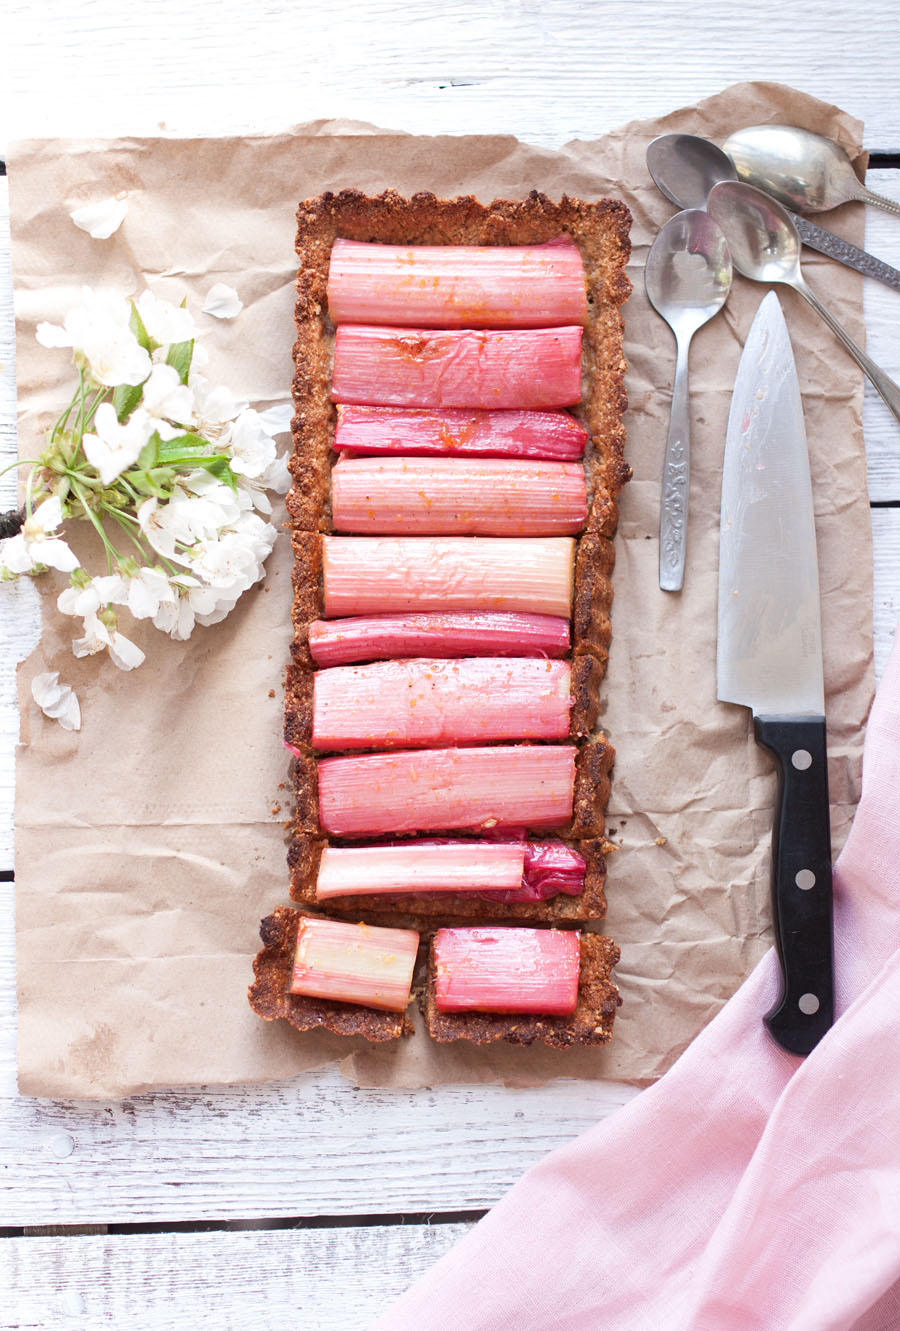 sweet rhubarb tart - The Little Plantation